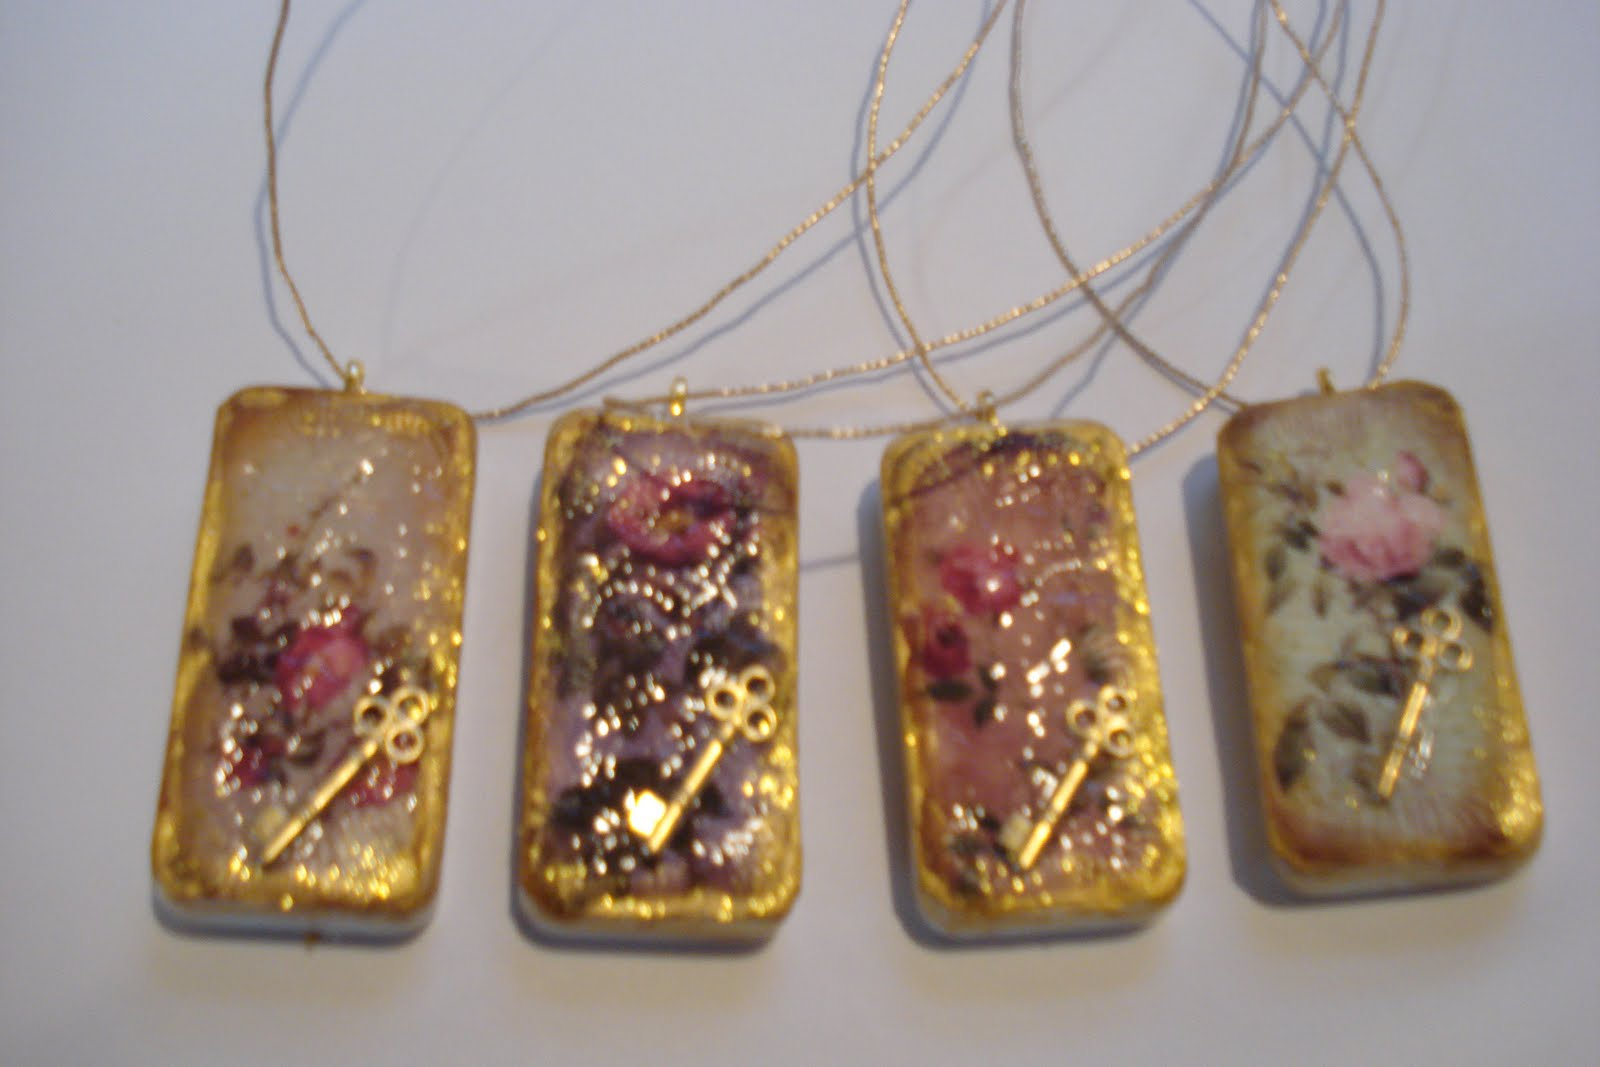 ALTERED EXPRESSIONS: Merry Christmas!! Believe in the Magic!!!domino ...: http://bloubell-alteredexpressions.blogspot.com/2010/12/domino-pendants.html